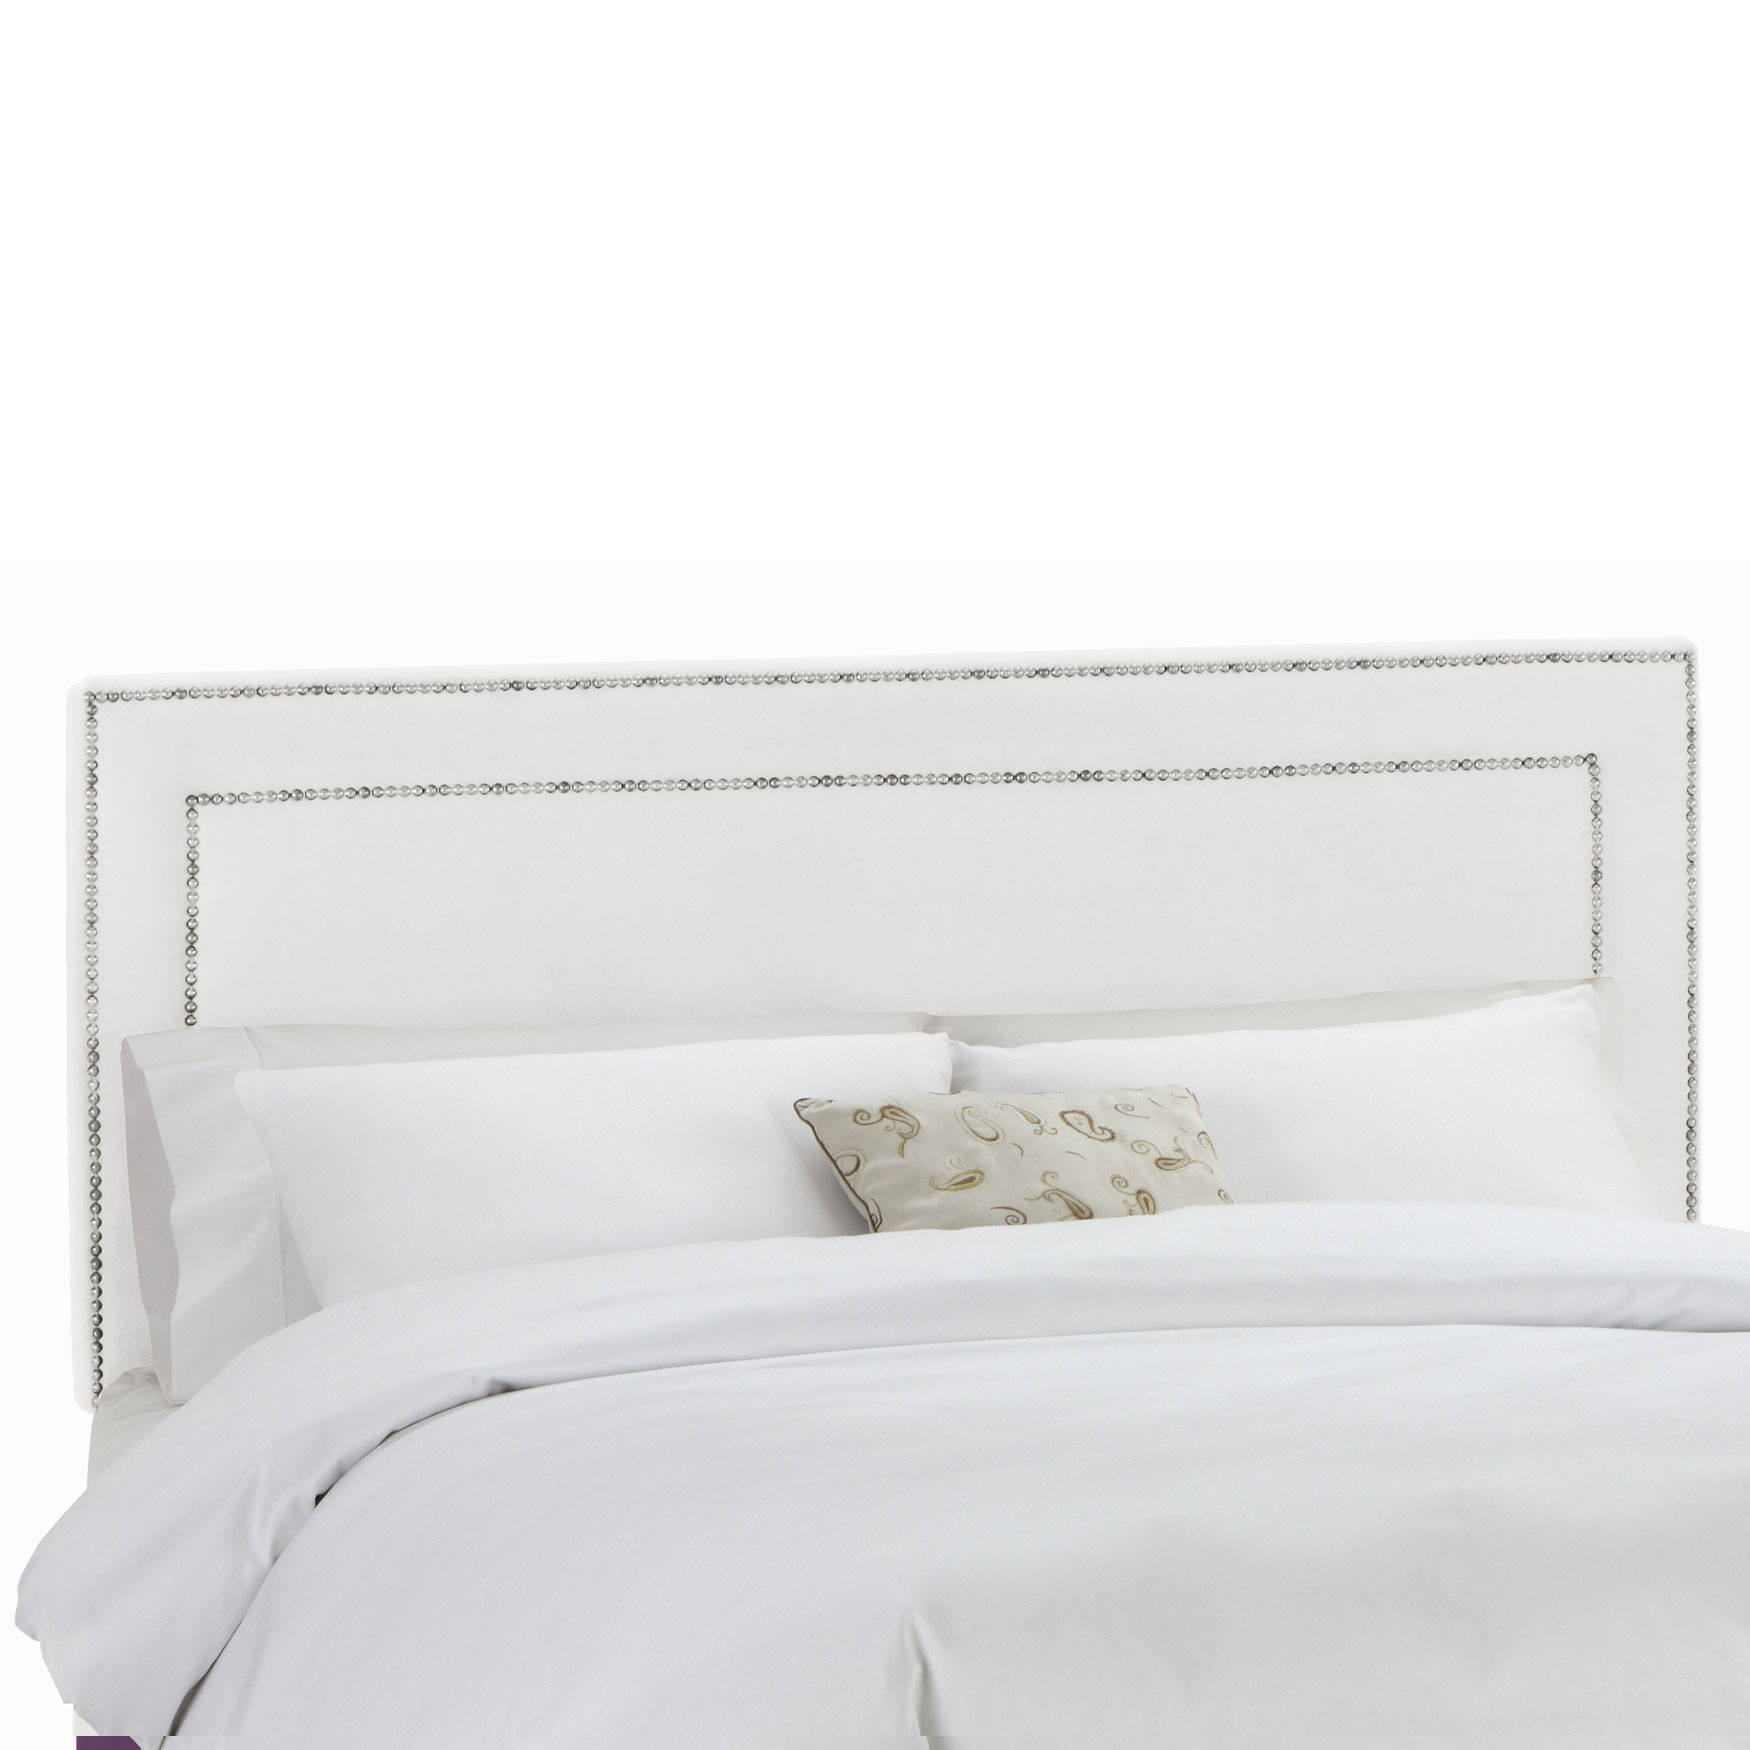 Queen Size, 62'Lx4'Wx51-54'H, WHITE